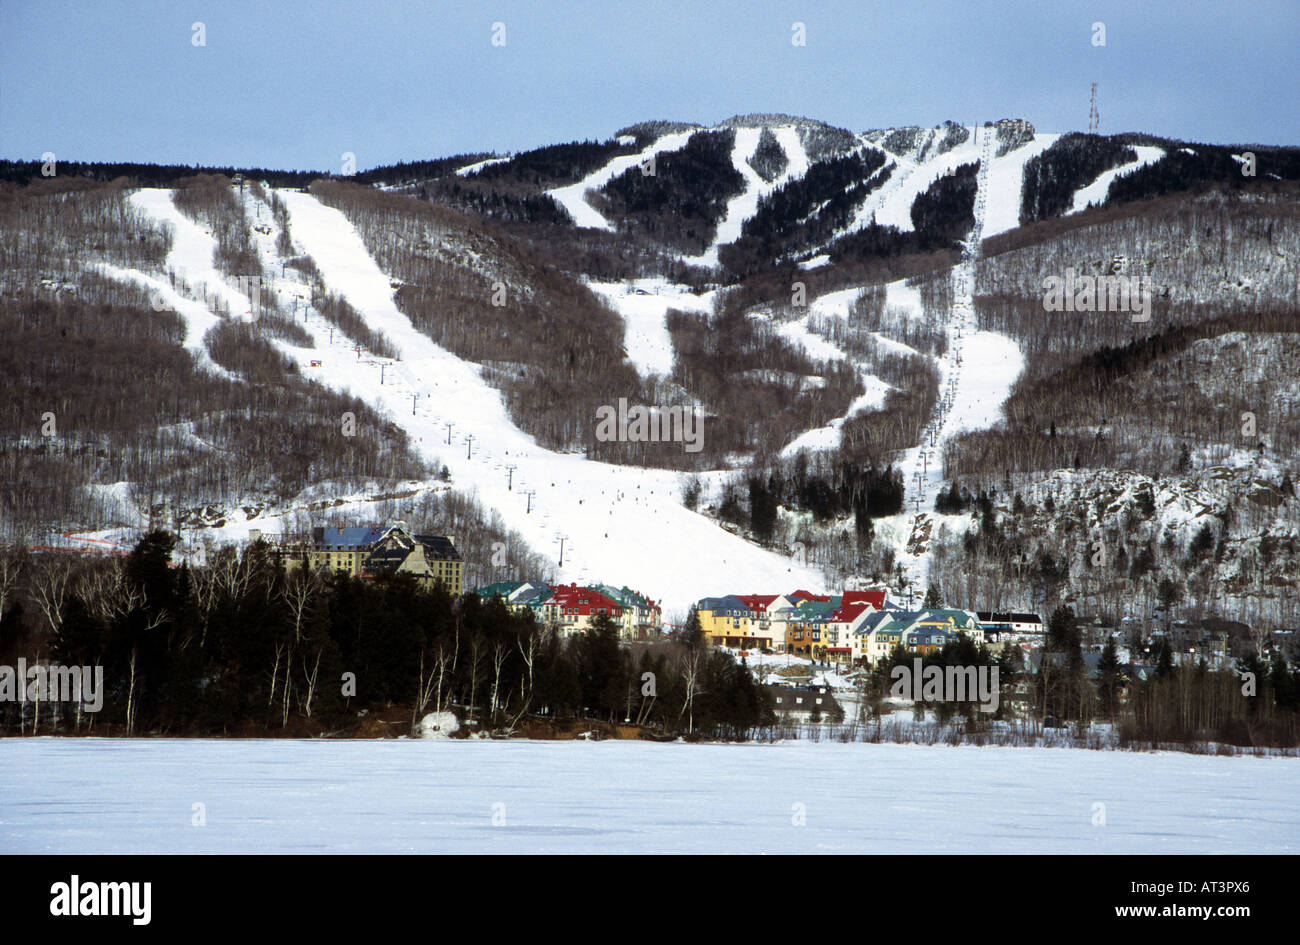 Distant view of some of the downhill ski runs at  Mont Tremblant ski resort Quebec Canada - Stock Image